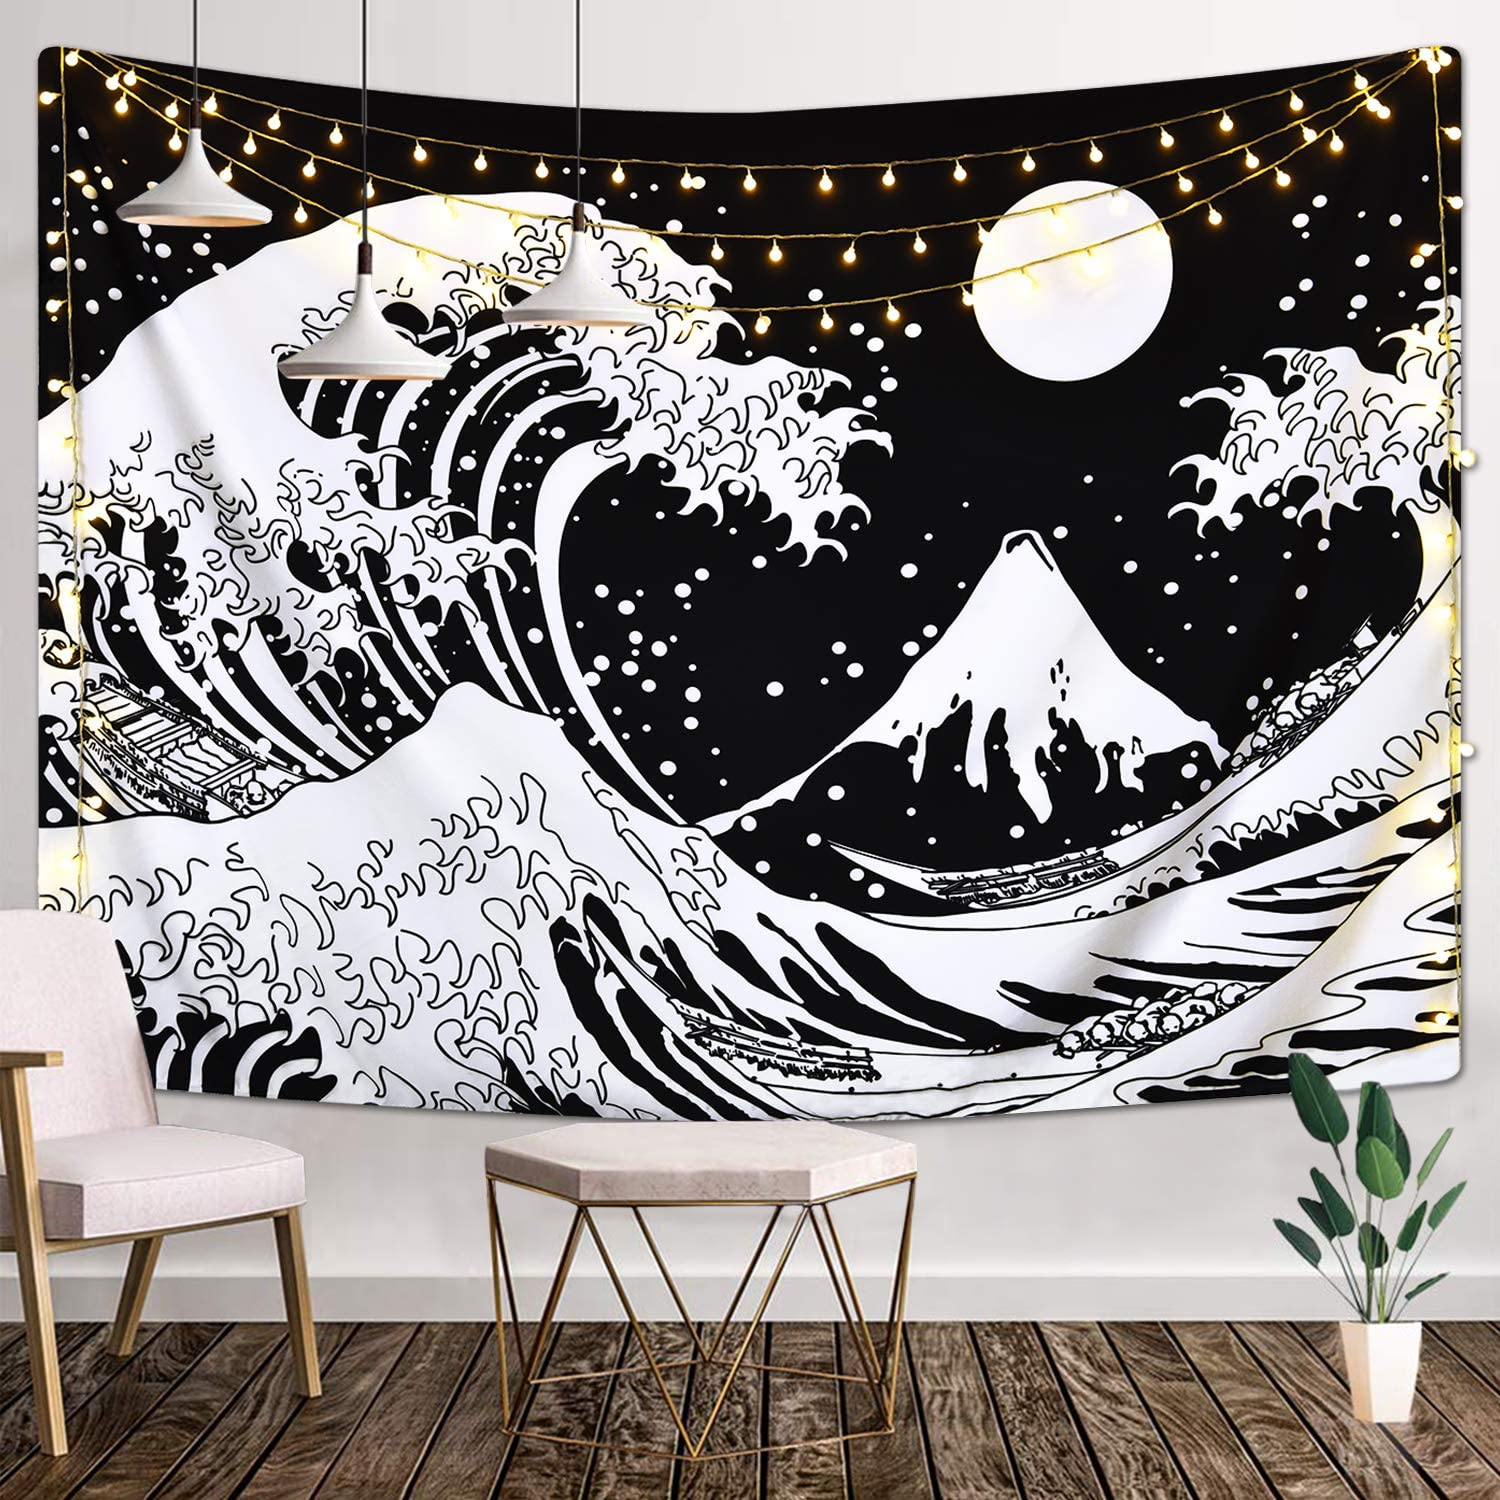 Japanese Wave Tapestry,Kanagawa Great Wave Wall Tapestry, Wave Tapestry with Sun Tapestries, Black and White Tapestry for Room